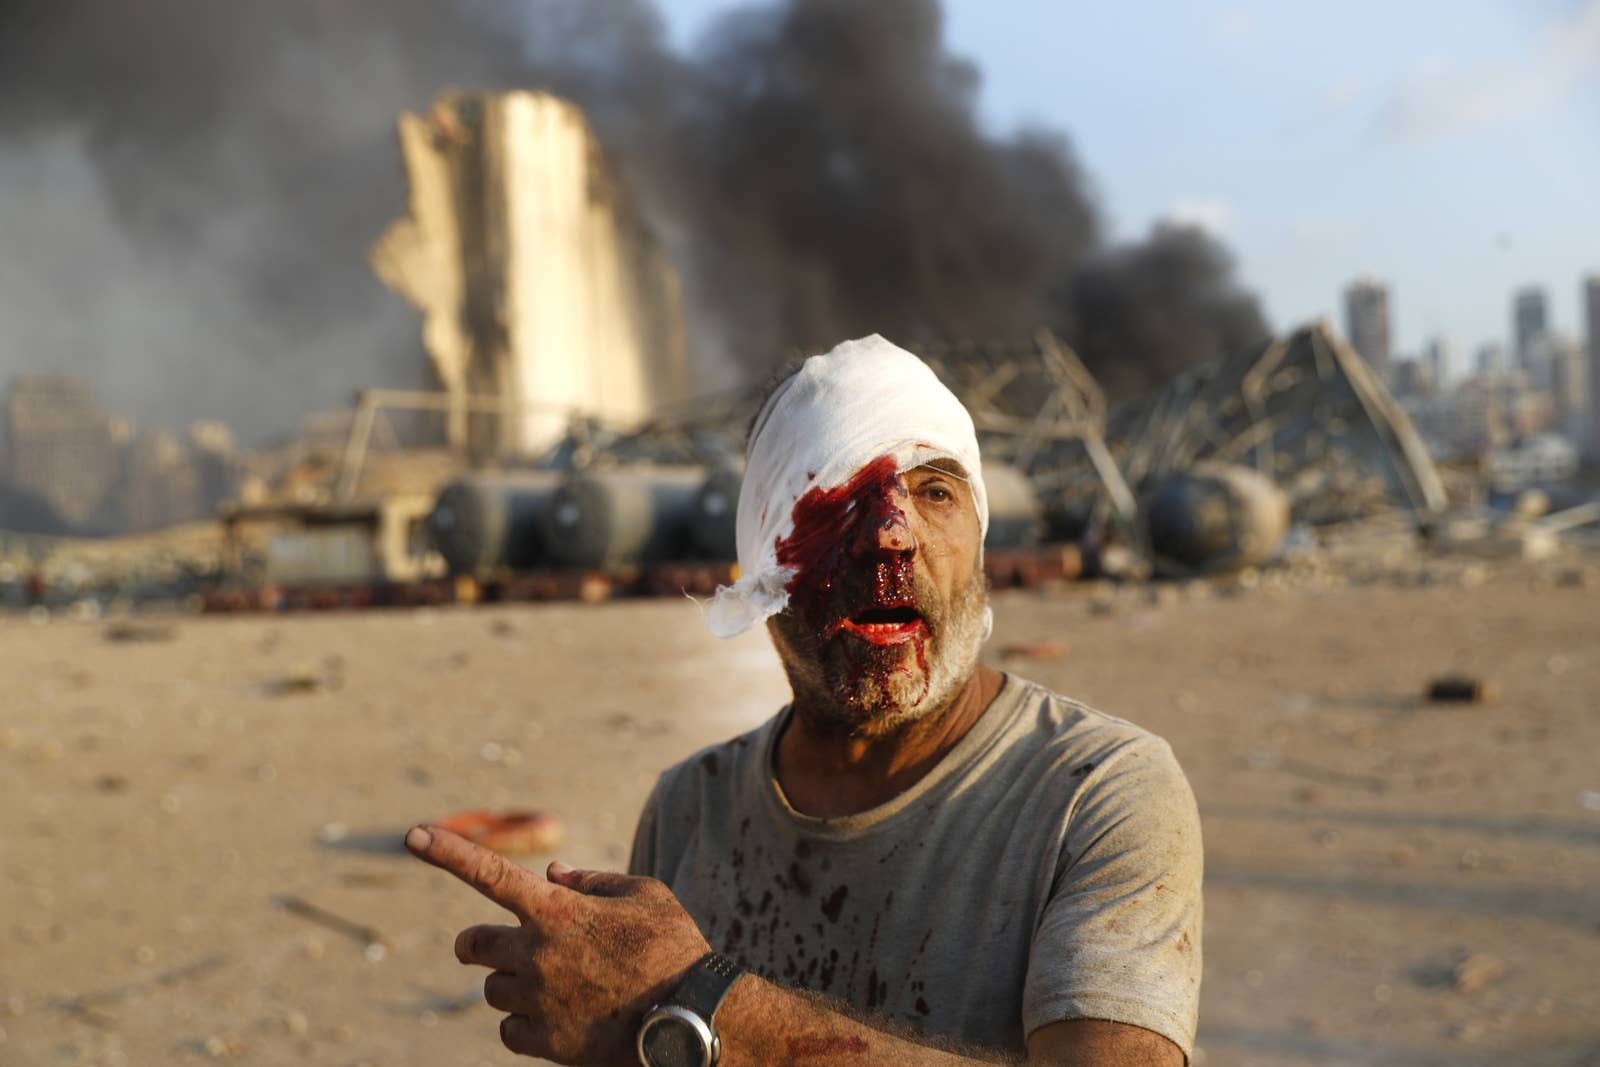 A man with a bandage on his head and blood running down the left side of his face points away while standing in front of debris